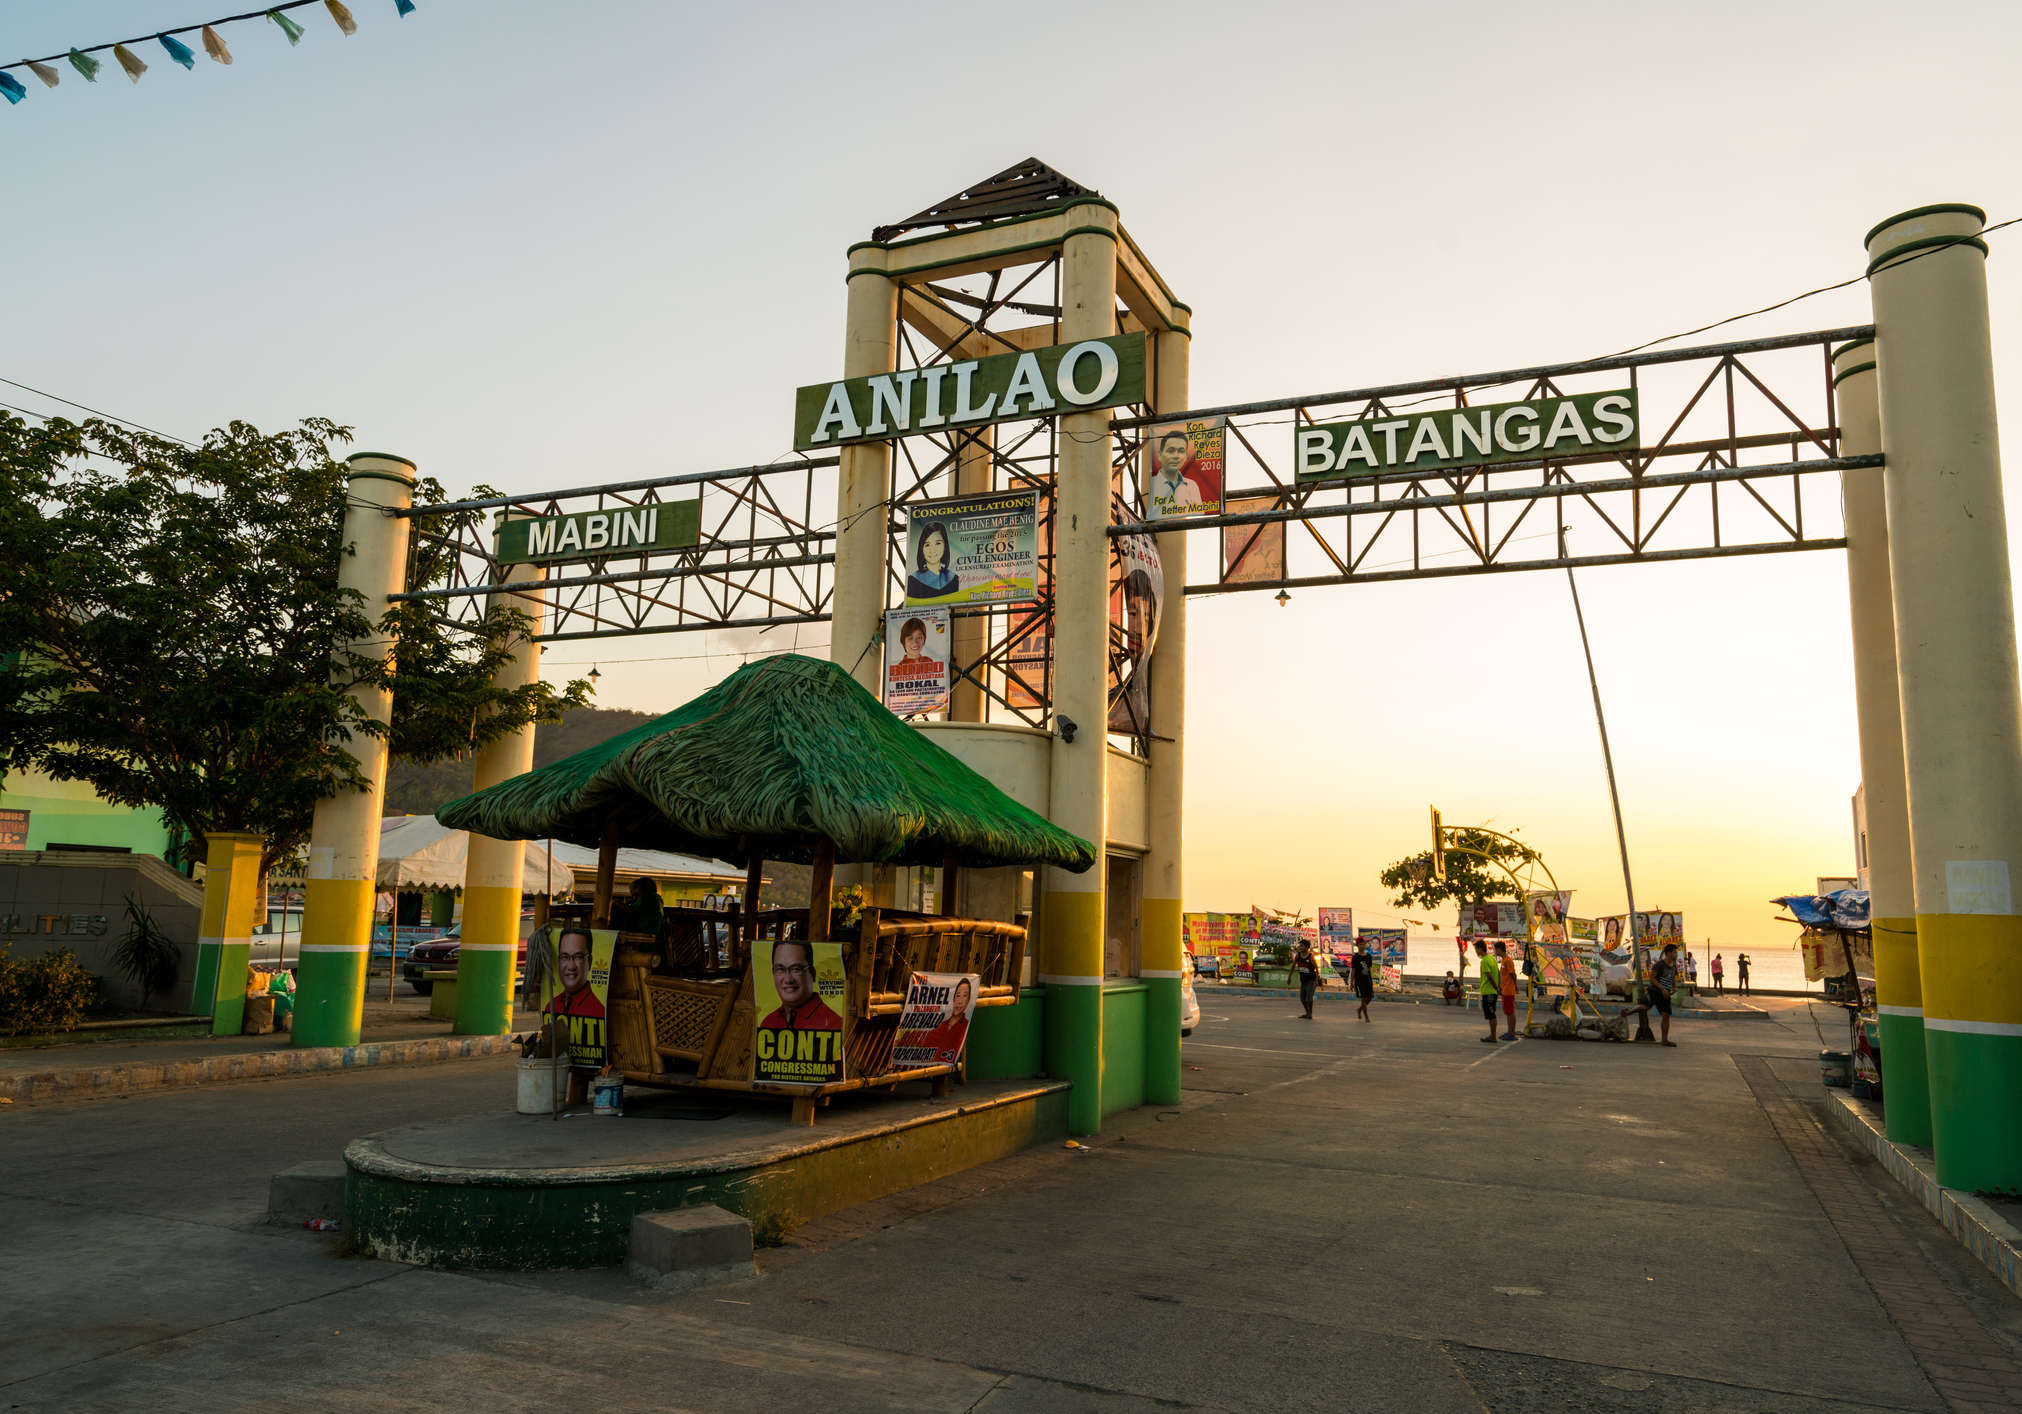 Batangas, Philippines - May 1, 2016: View of the city arch in Anilao in Batangas, Philippines during sunset. People can be seen walking around the street. The sea can be seen upon closer inspection.